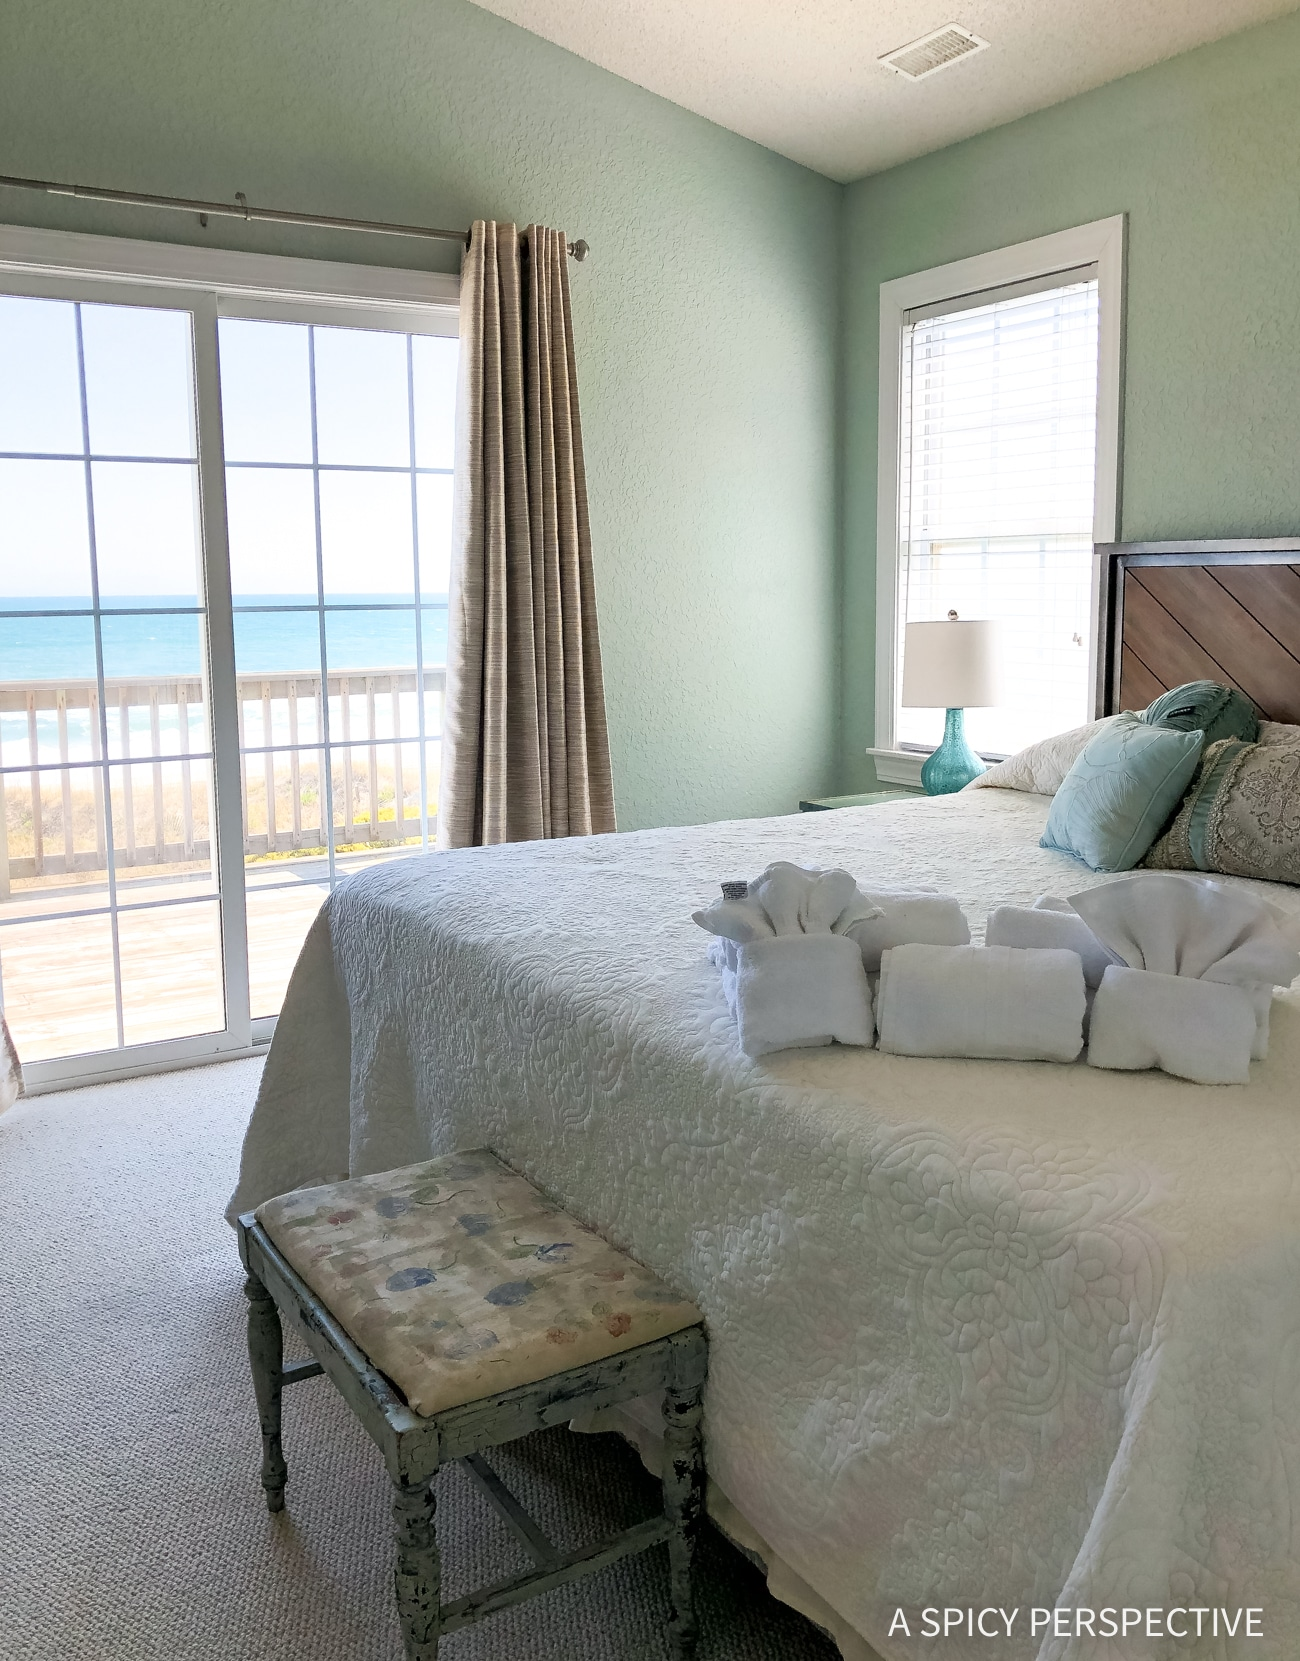 Rental House - Why You Should Visit The Crystal Coast Outer Banks NC (Emerald Isle Vacation Travel Tips!)